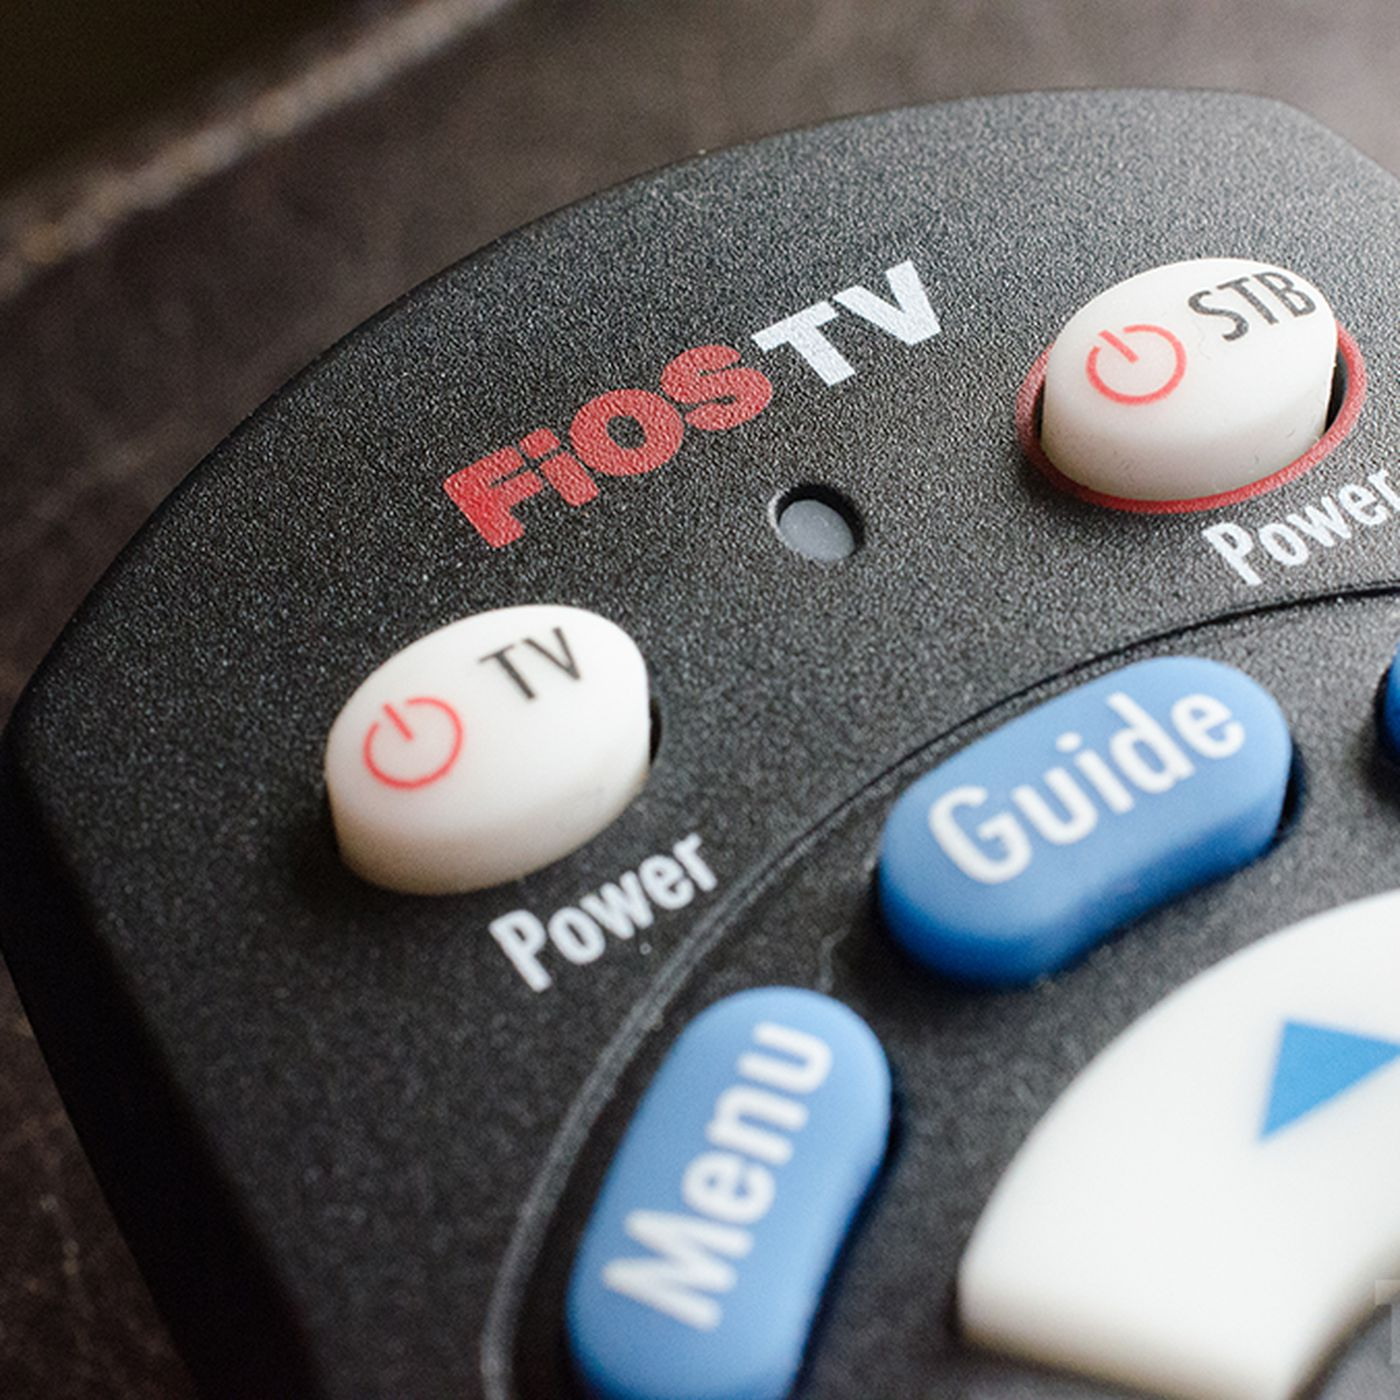 Verizon Fios will let you stream from your DVR when you're